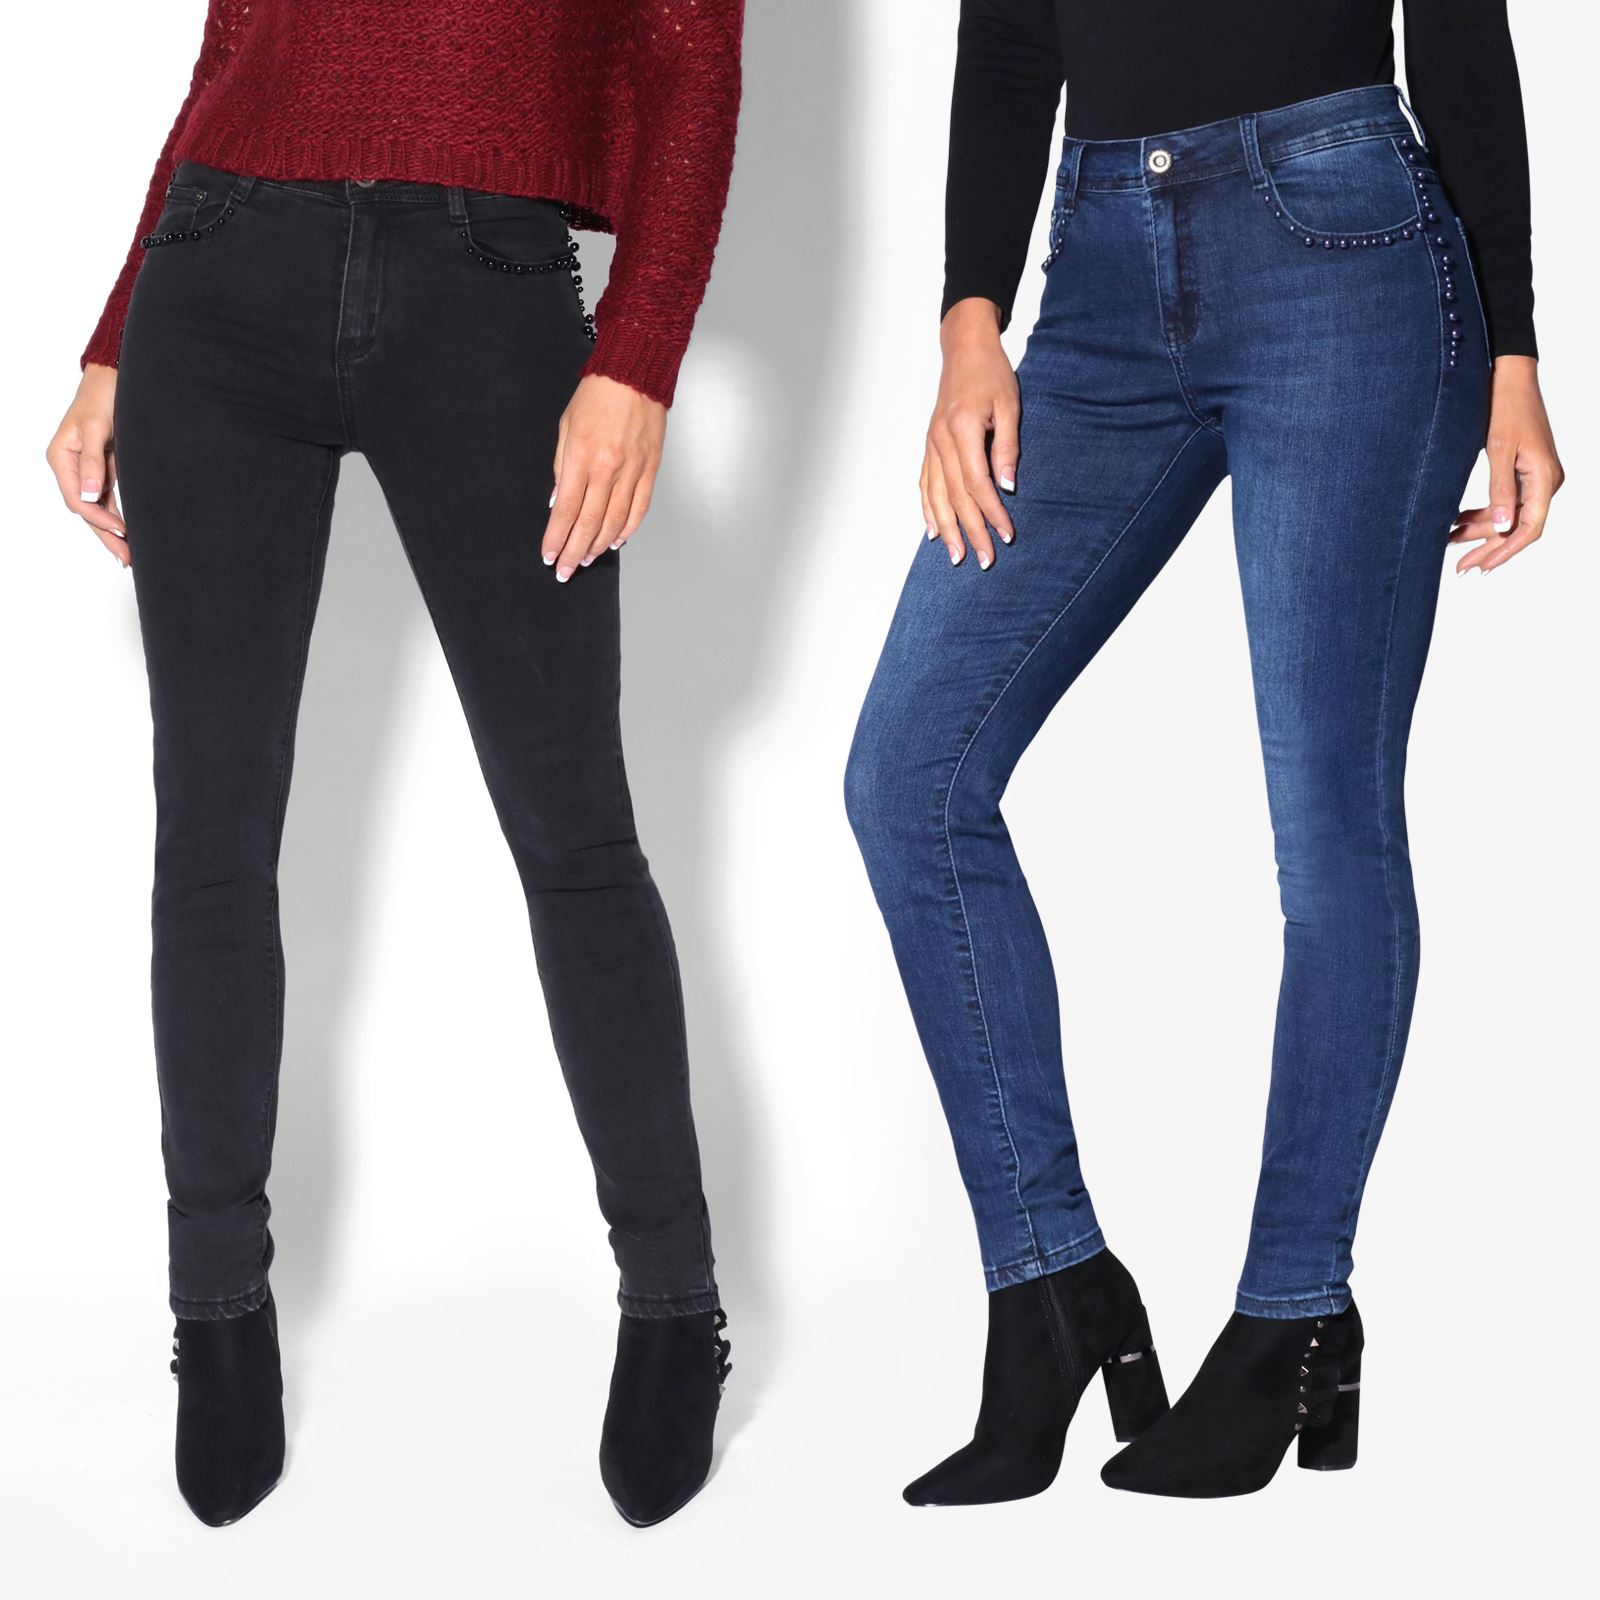 0581a6e2ea1 Details about Women Embellished Skinny Jeans Ladies Slim Stretch Fitted  Denim Trousers Pants